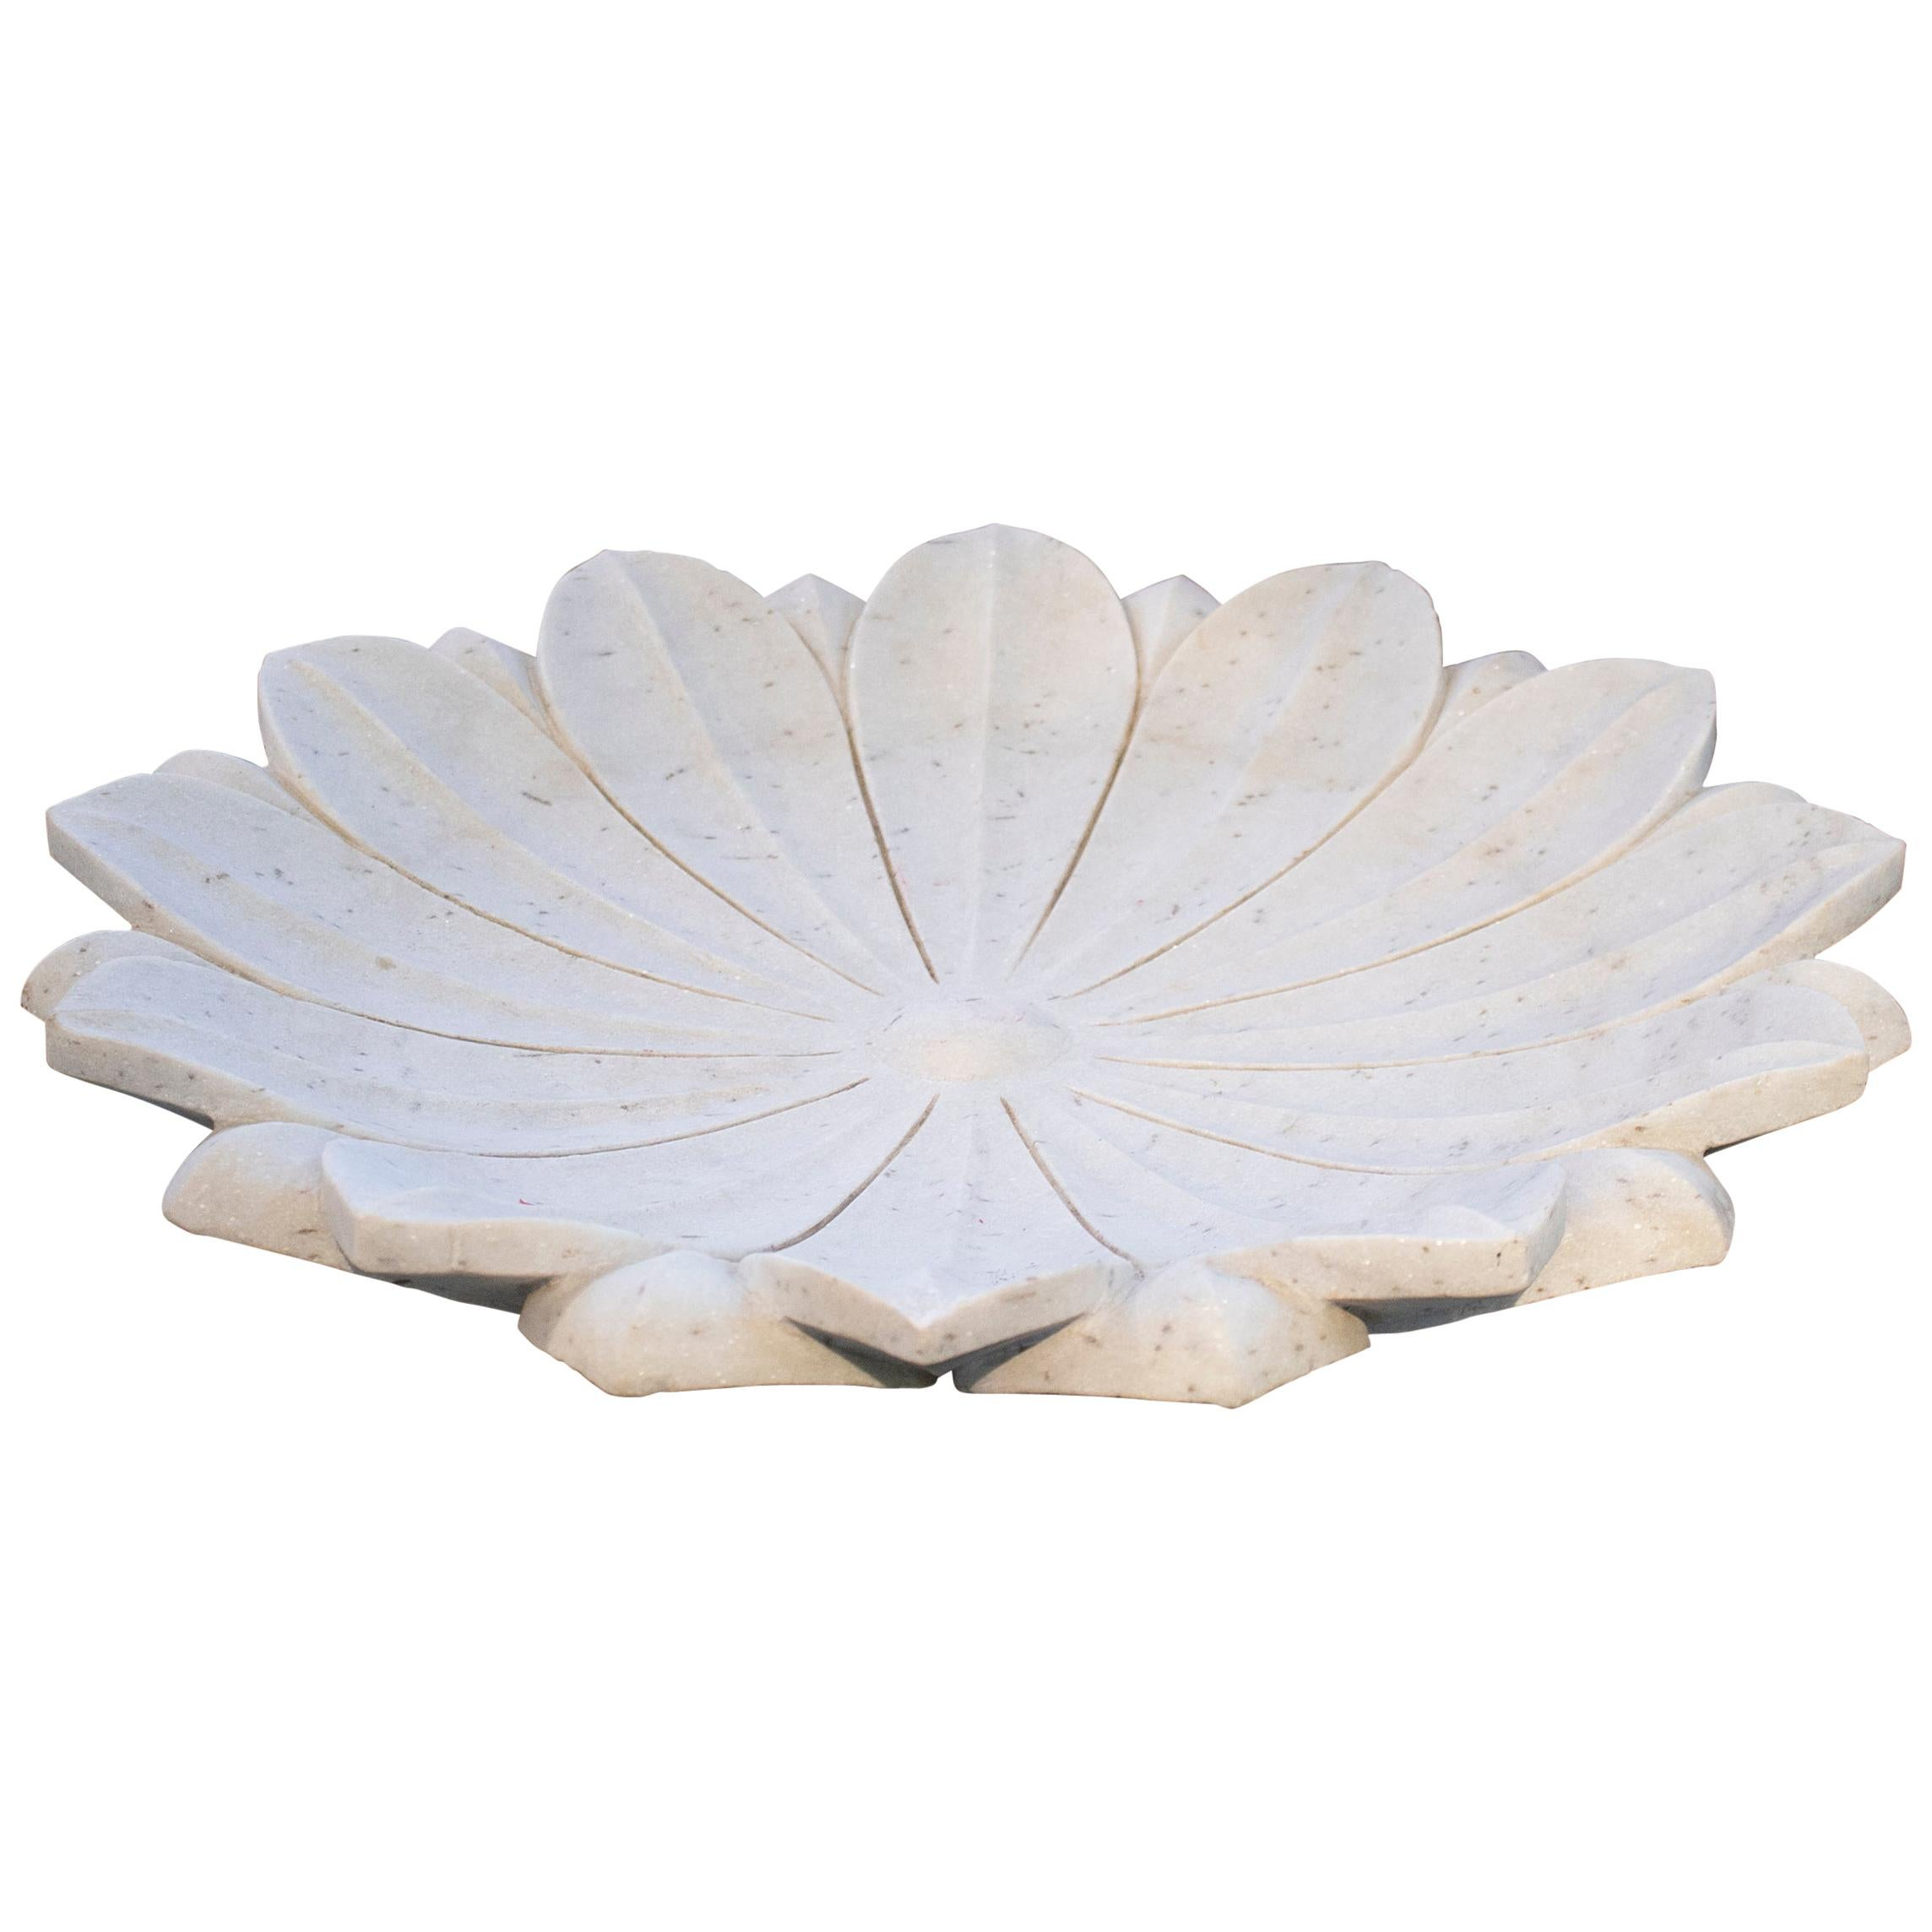 1990s Spanish Hand Carved Lotus Flower White Marble Floor Fountain